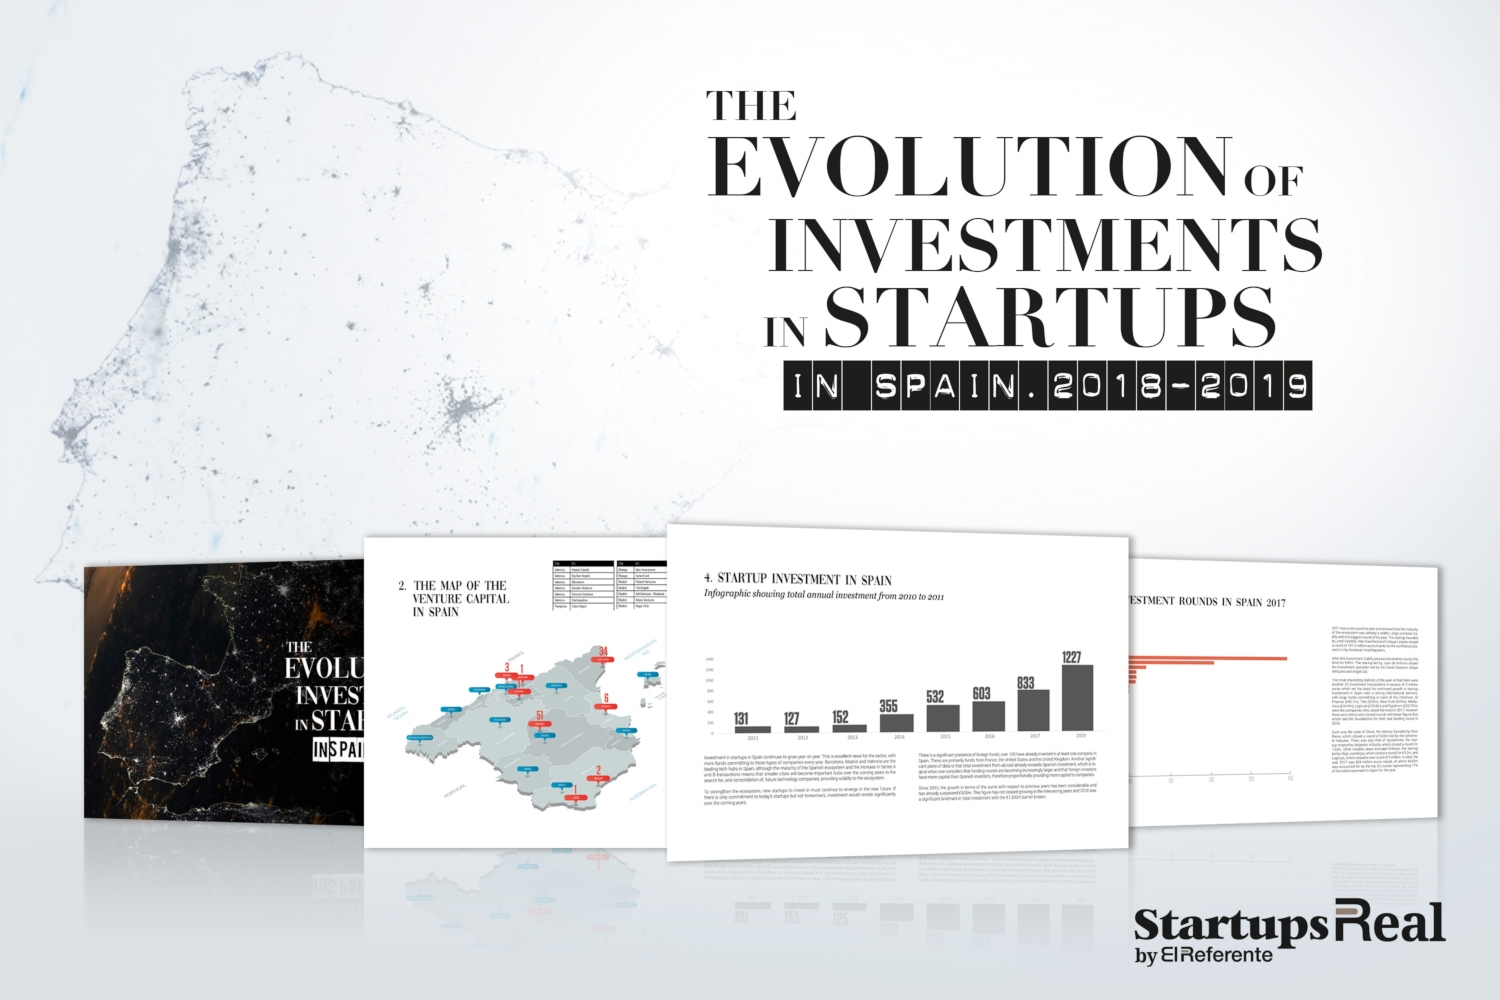 Report on investment in Startups in Spain 2018-2019